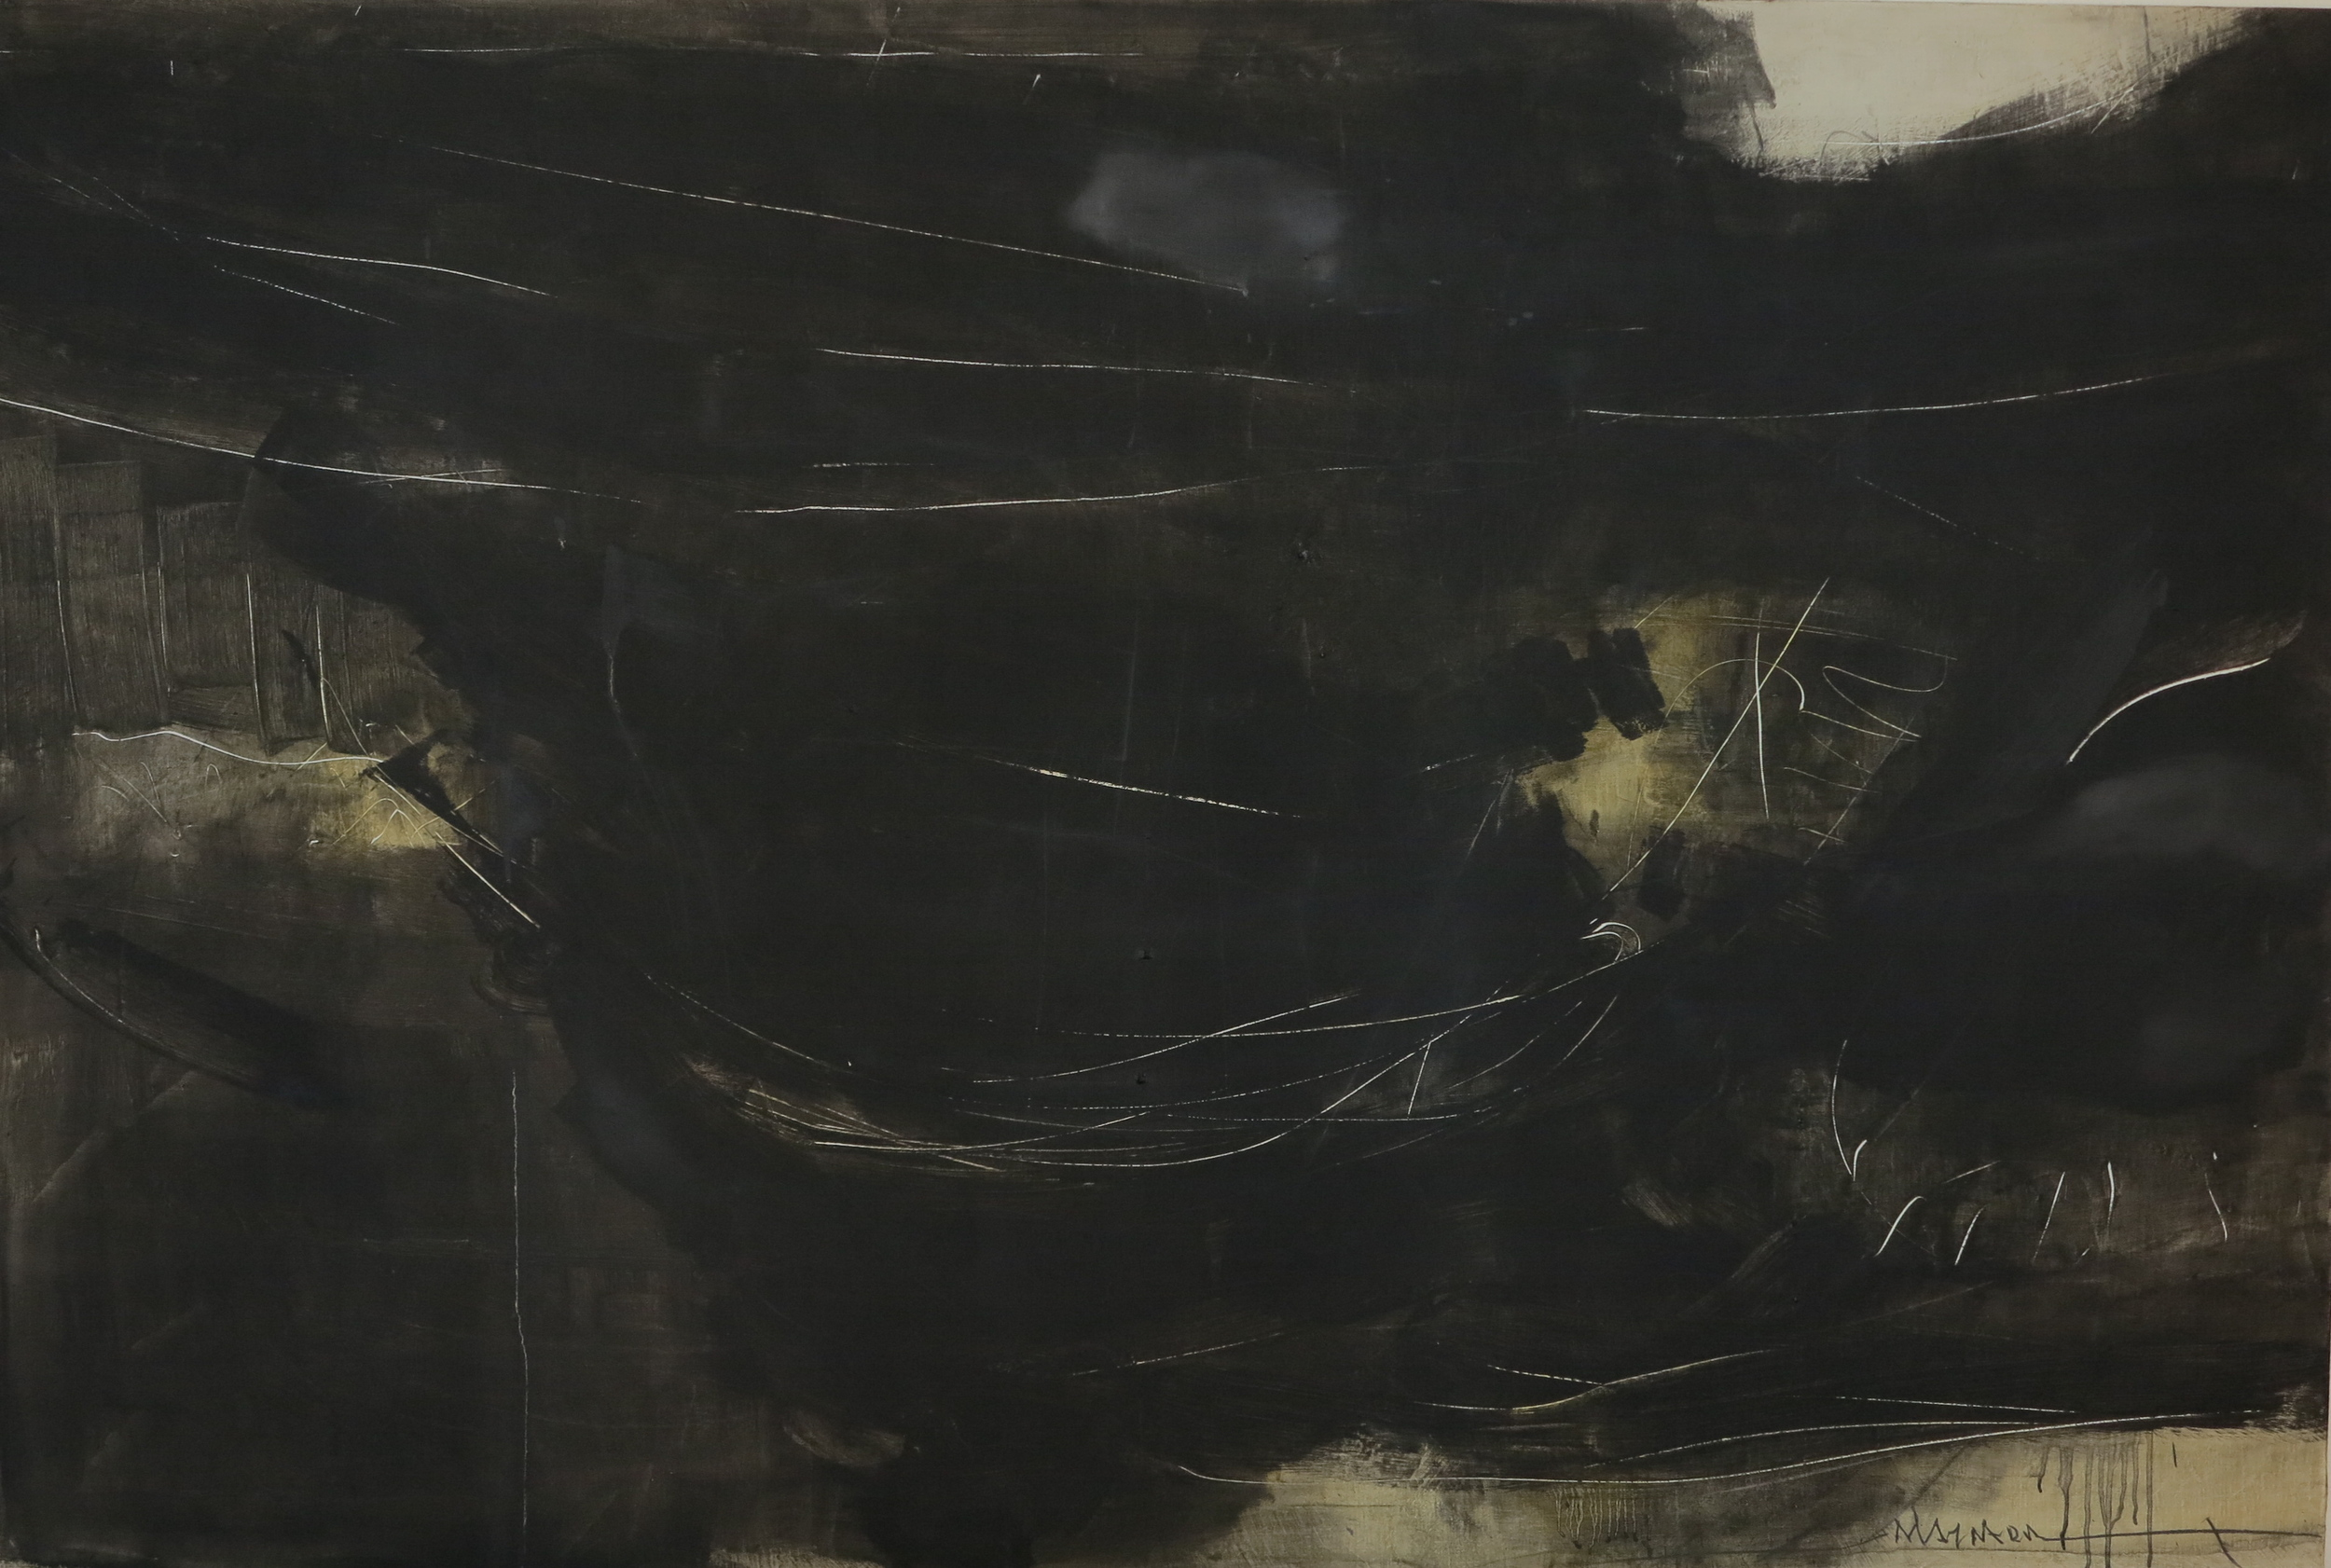 Oil on canvas - size 200 x 130 cm / 79 x 51 inches